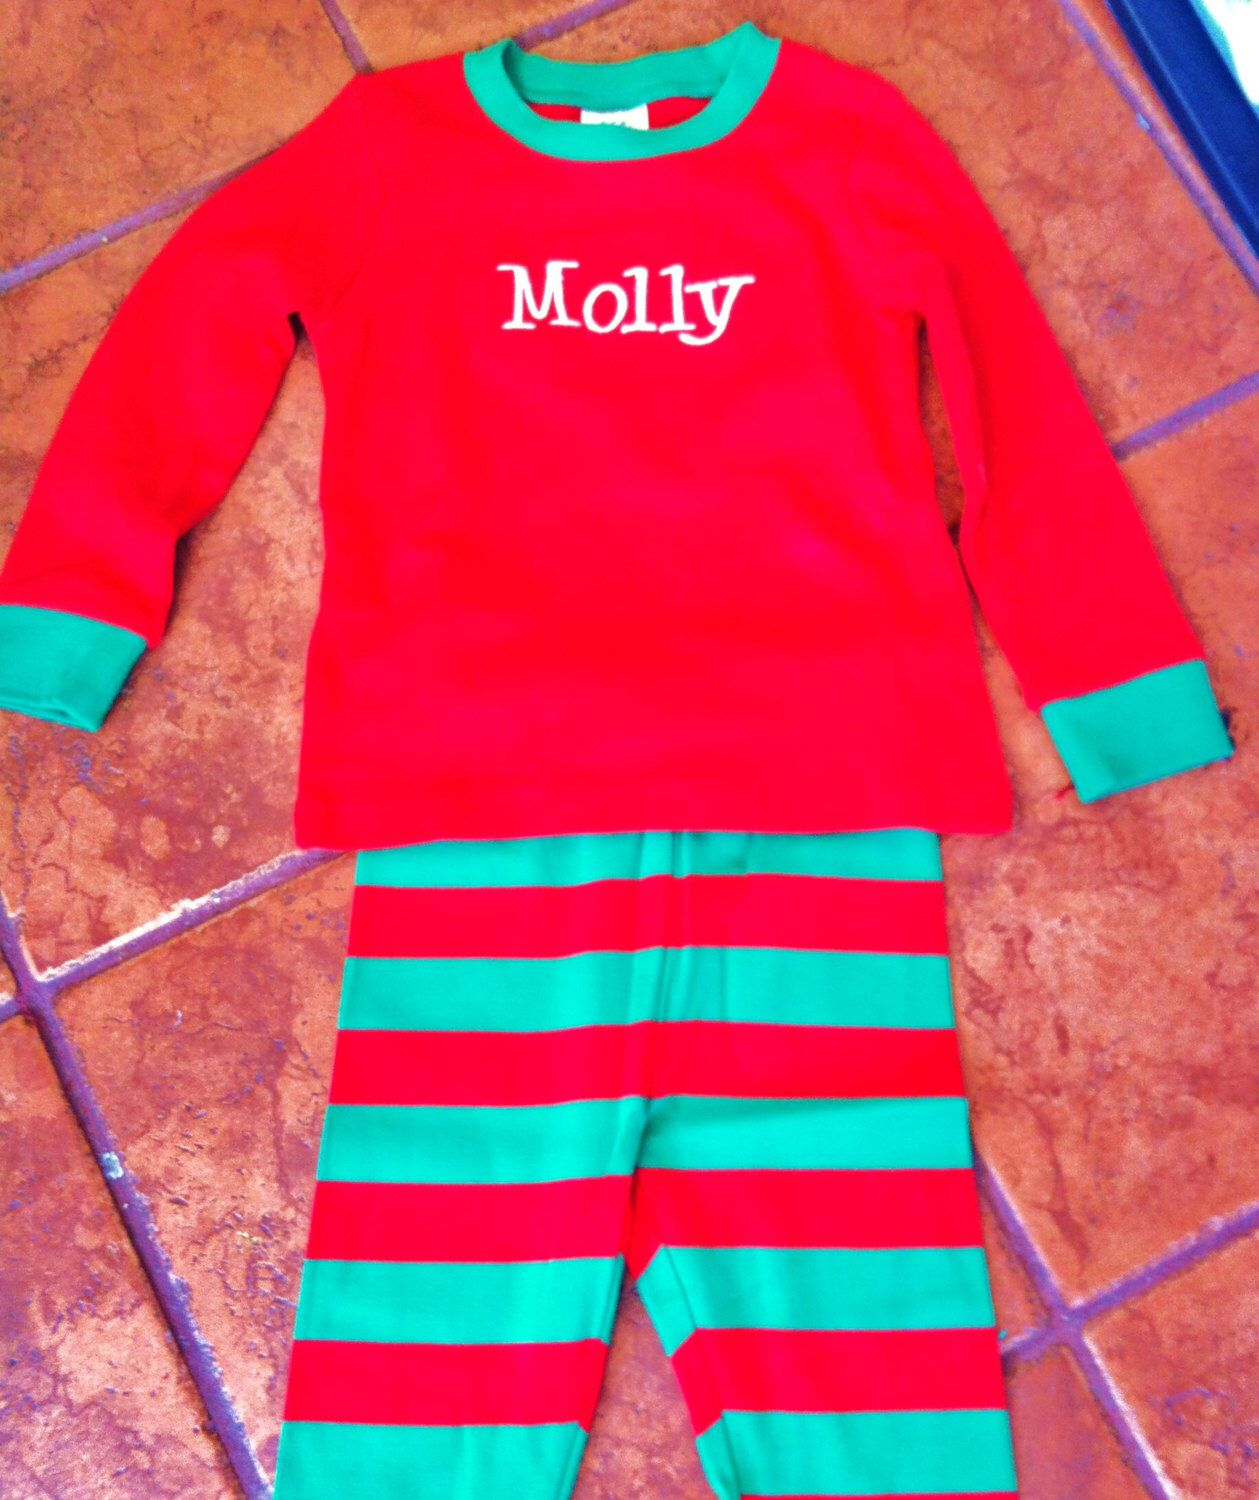 Personalized Christmas Pajamas Jammies by flauntthename on Etsy https://www.etsy.com/listing/208656408/personalized-christmas-pajamas-jammies